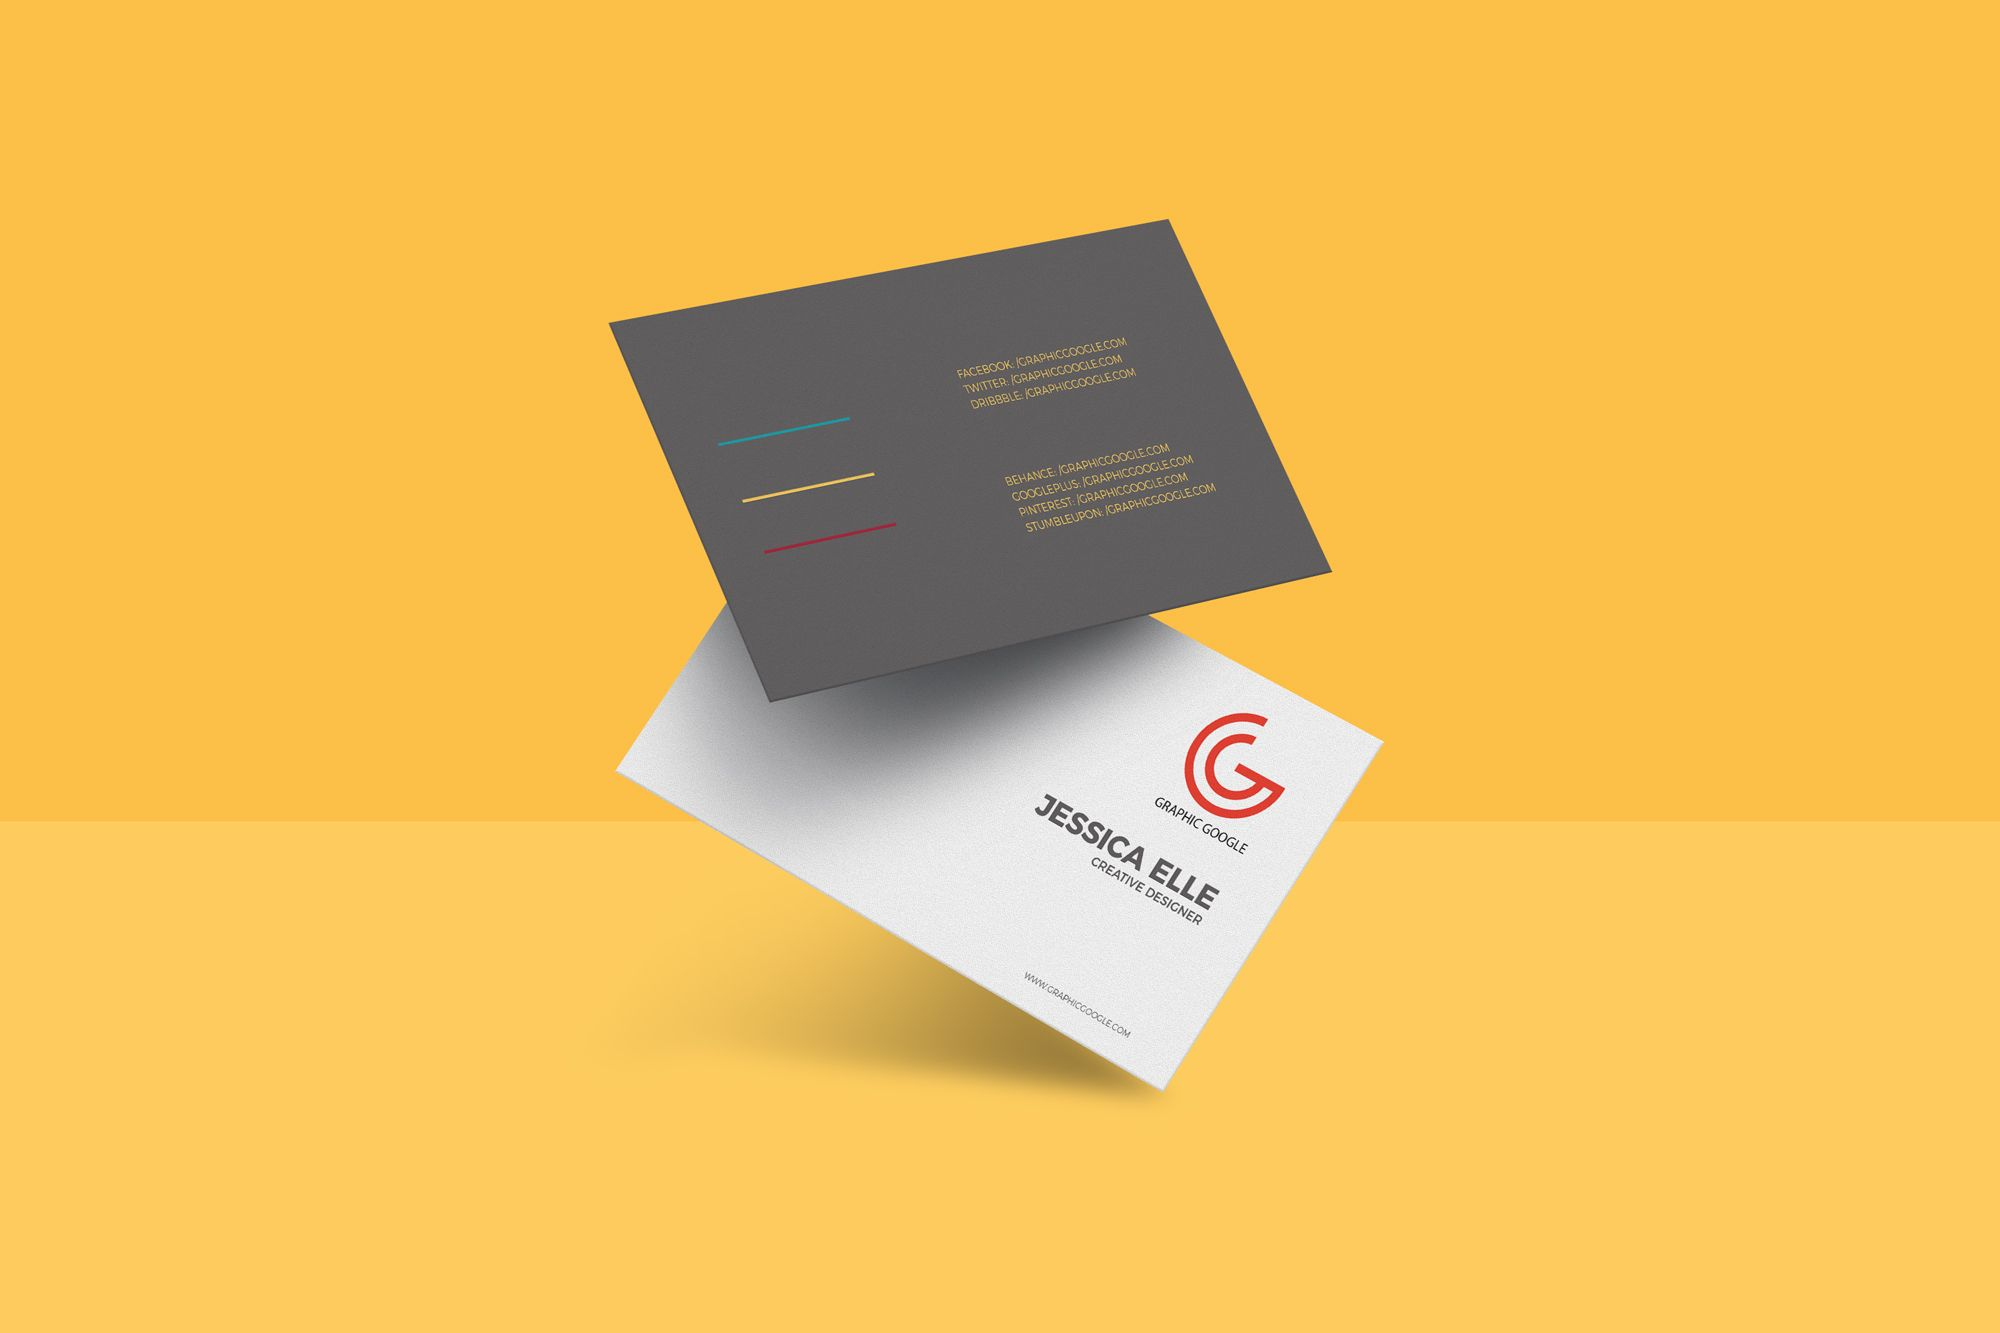 Free Floating Business Card Mockup Psd 6 57 Mb Graphic Google Free Photoshop Business Cards Mockup Psd Business Card Mock Up Free Business Card Mockup